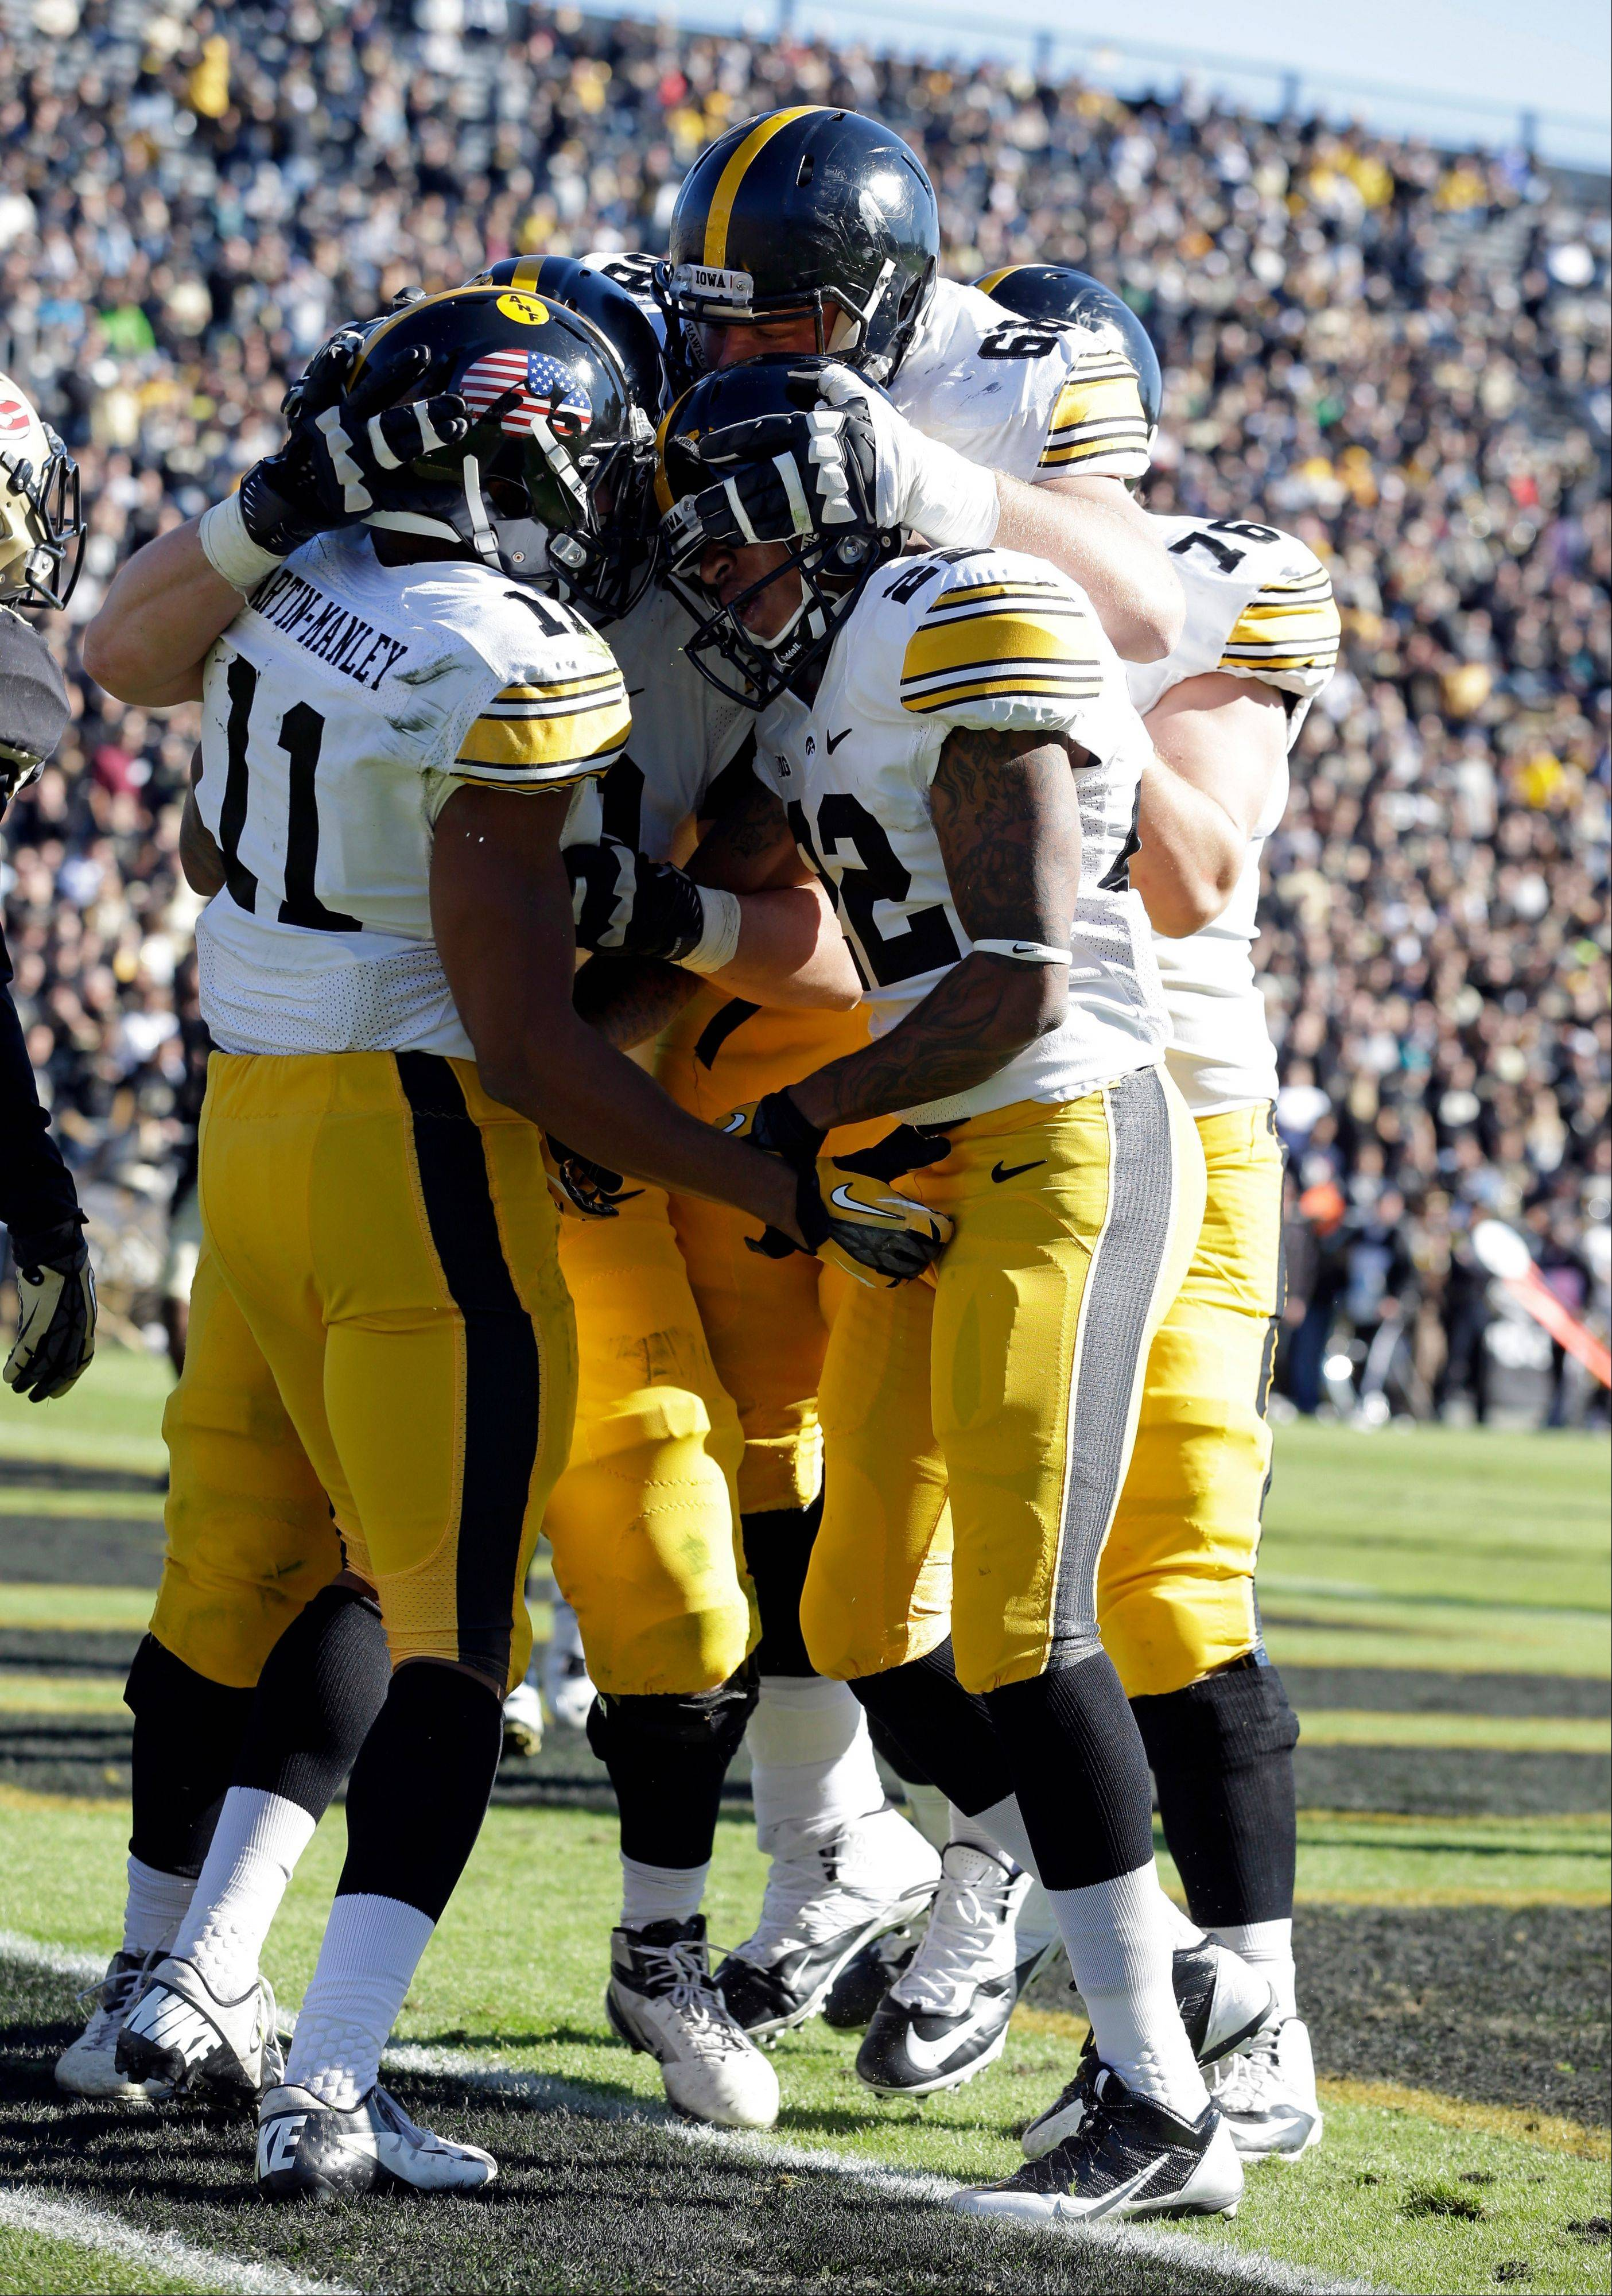 Iowa wide receiver Kevonte Martin-Manley (11) celebrates with tight end Ray Hamilton, right, and offensive linesman Brandon Scherff after scoring a touchdown against Purdue during the first half of an NCAA college football game in West Lafayette, Ind., Saturday, Nov. 9, 2013. (AP Photo/Michael Conroy)